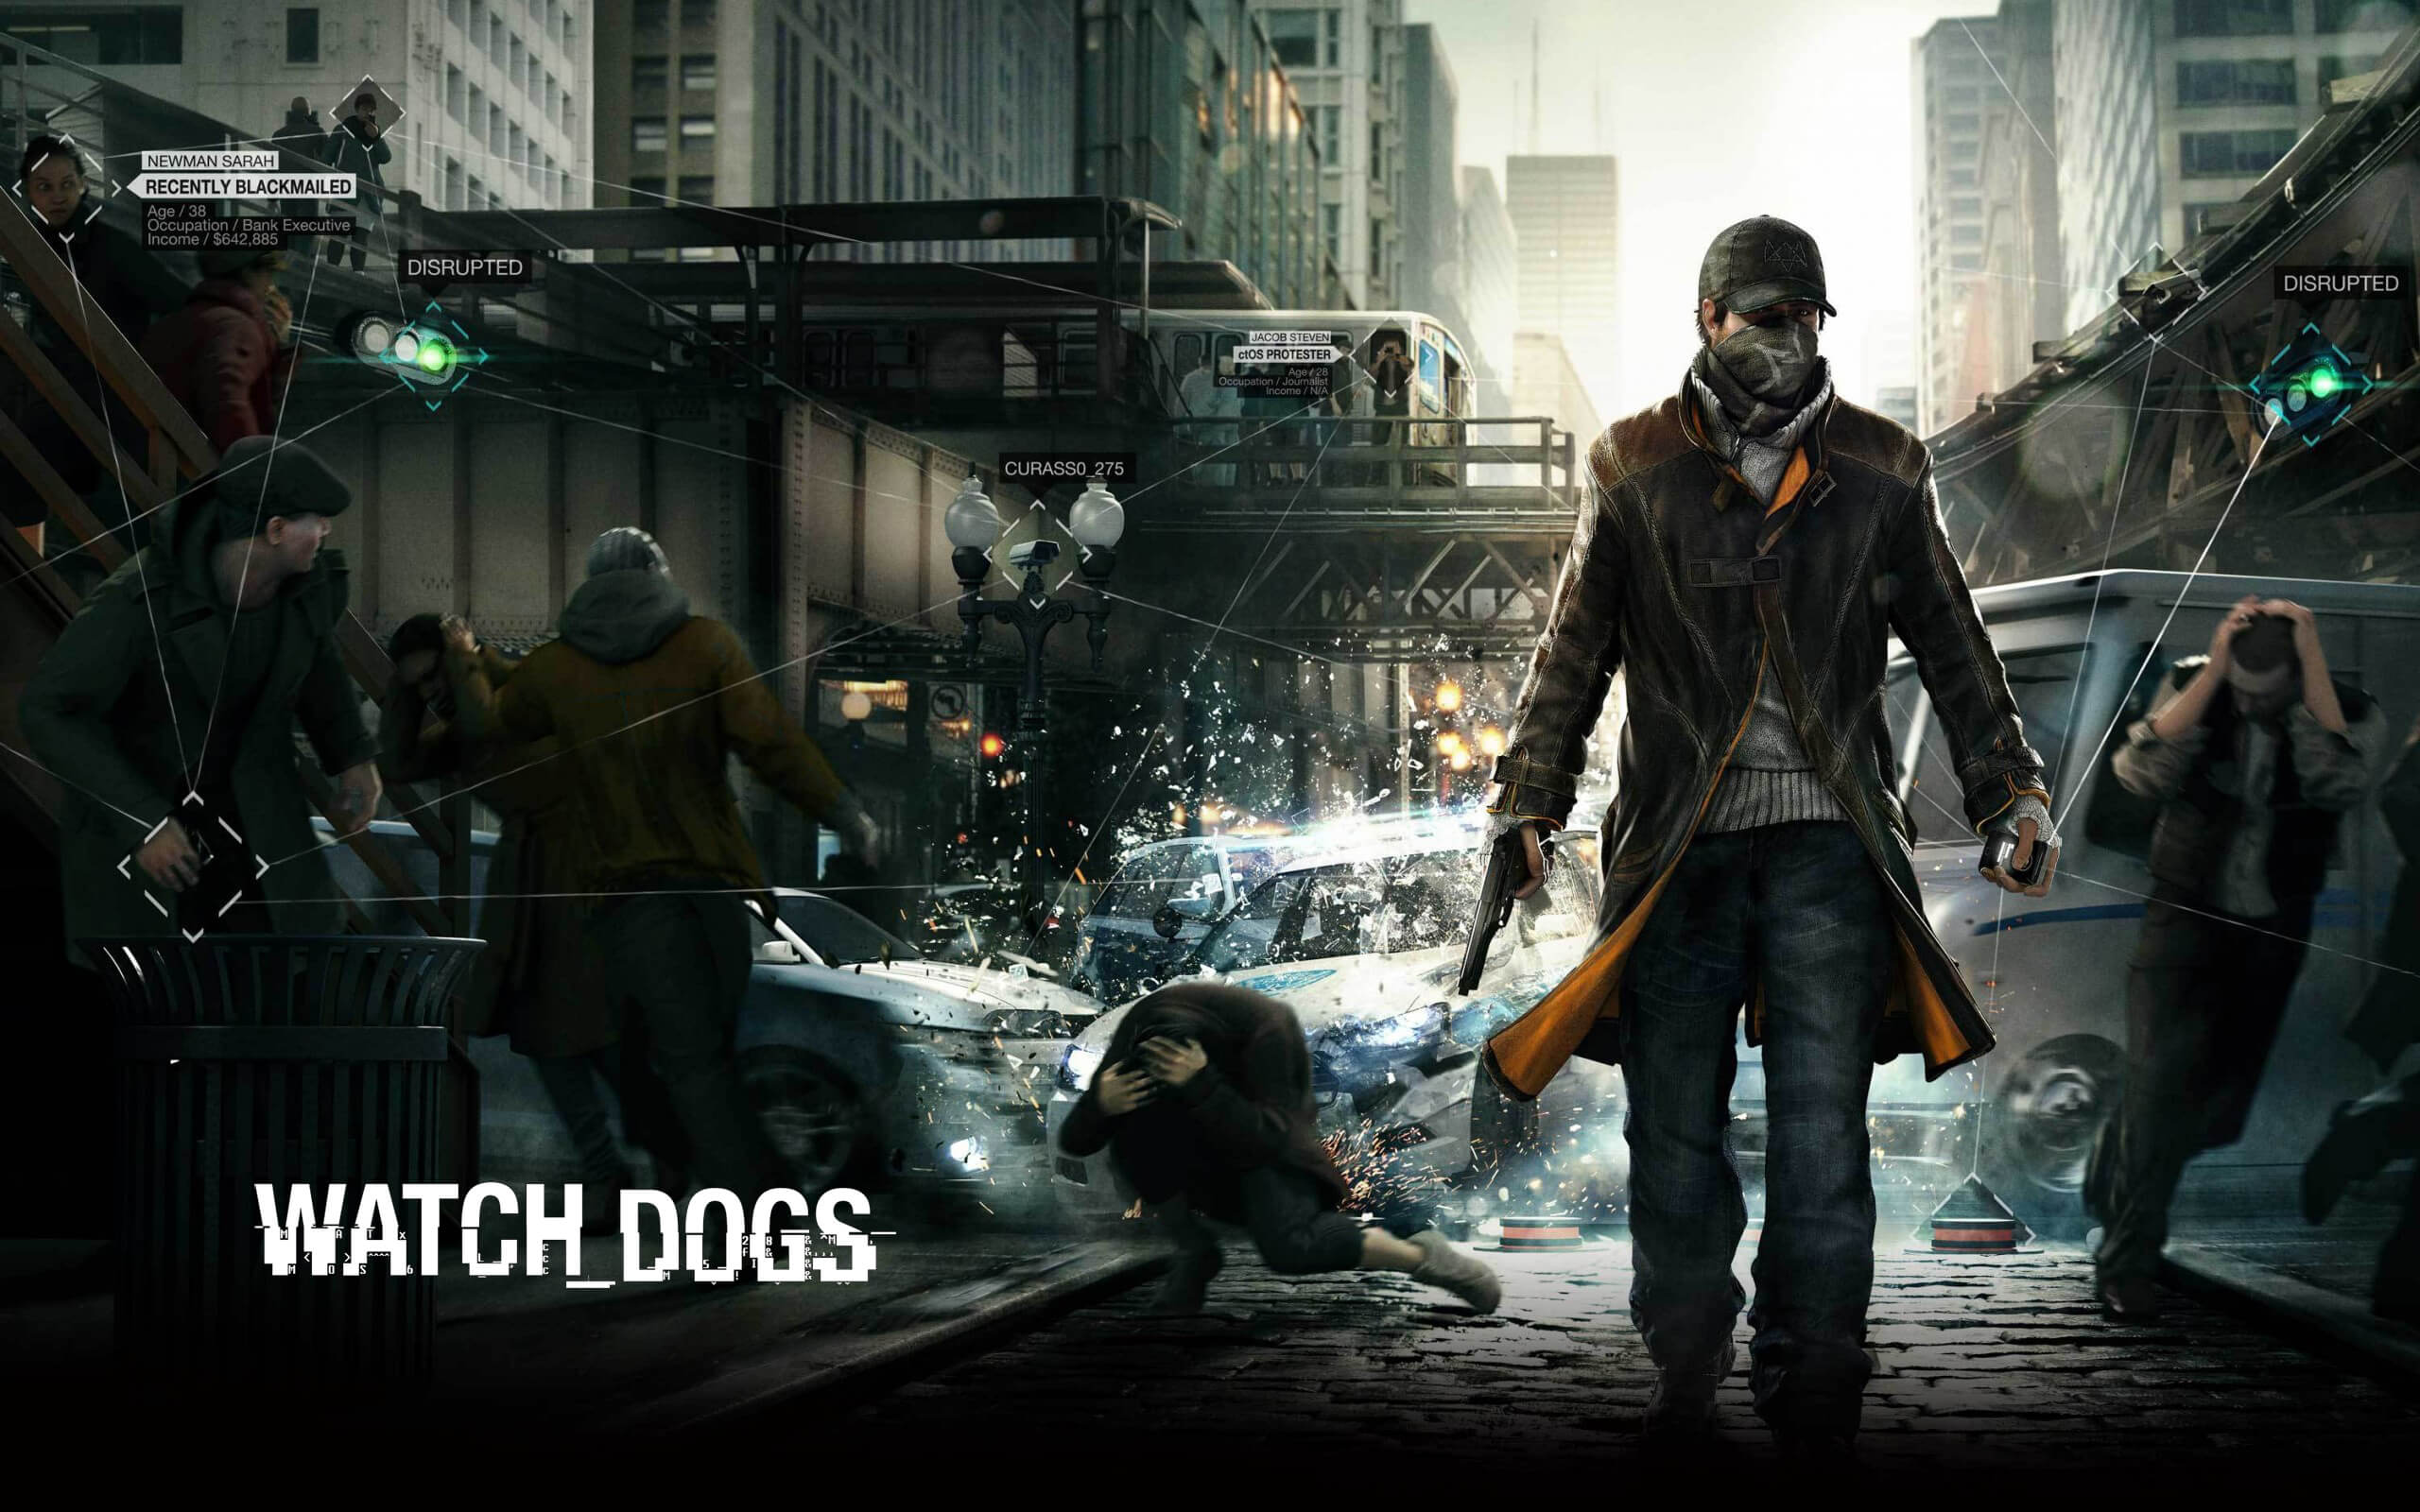 Official 'Watch Dogs' Release Date & Story Trailer Revealed